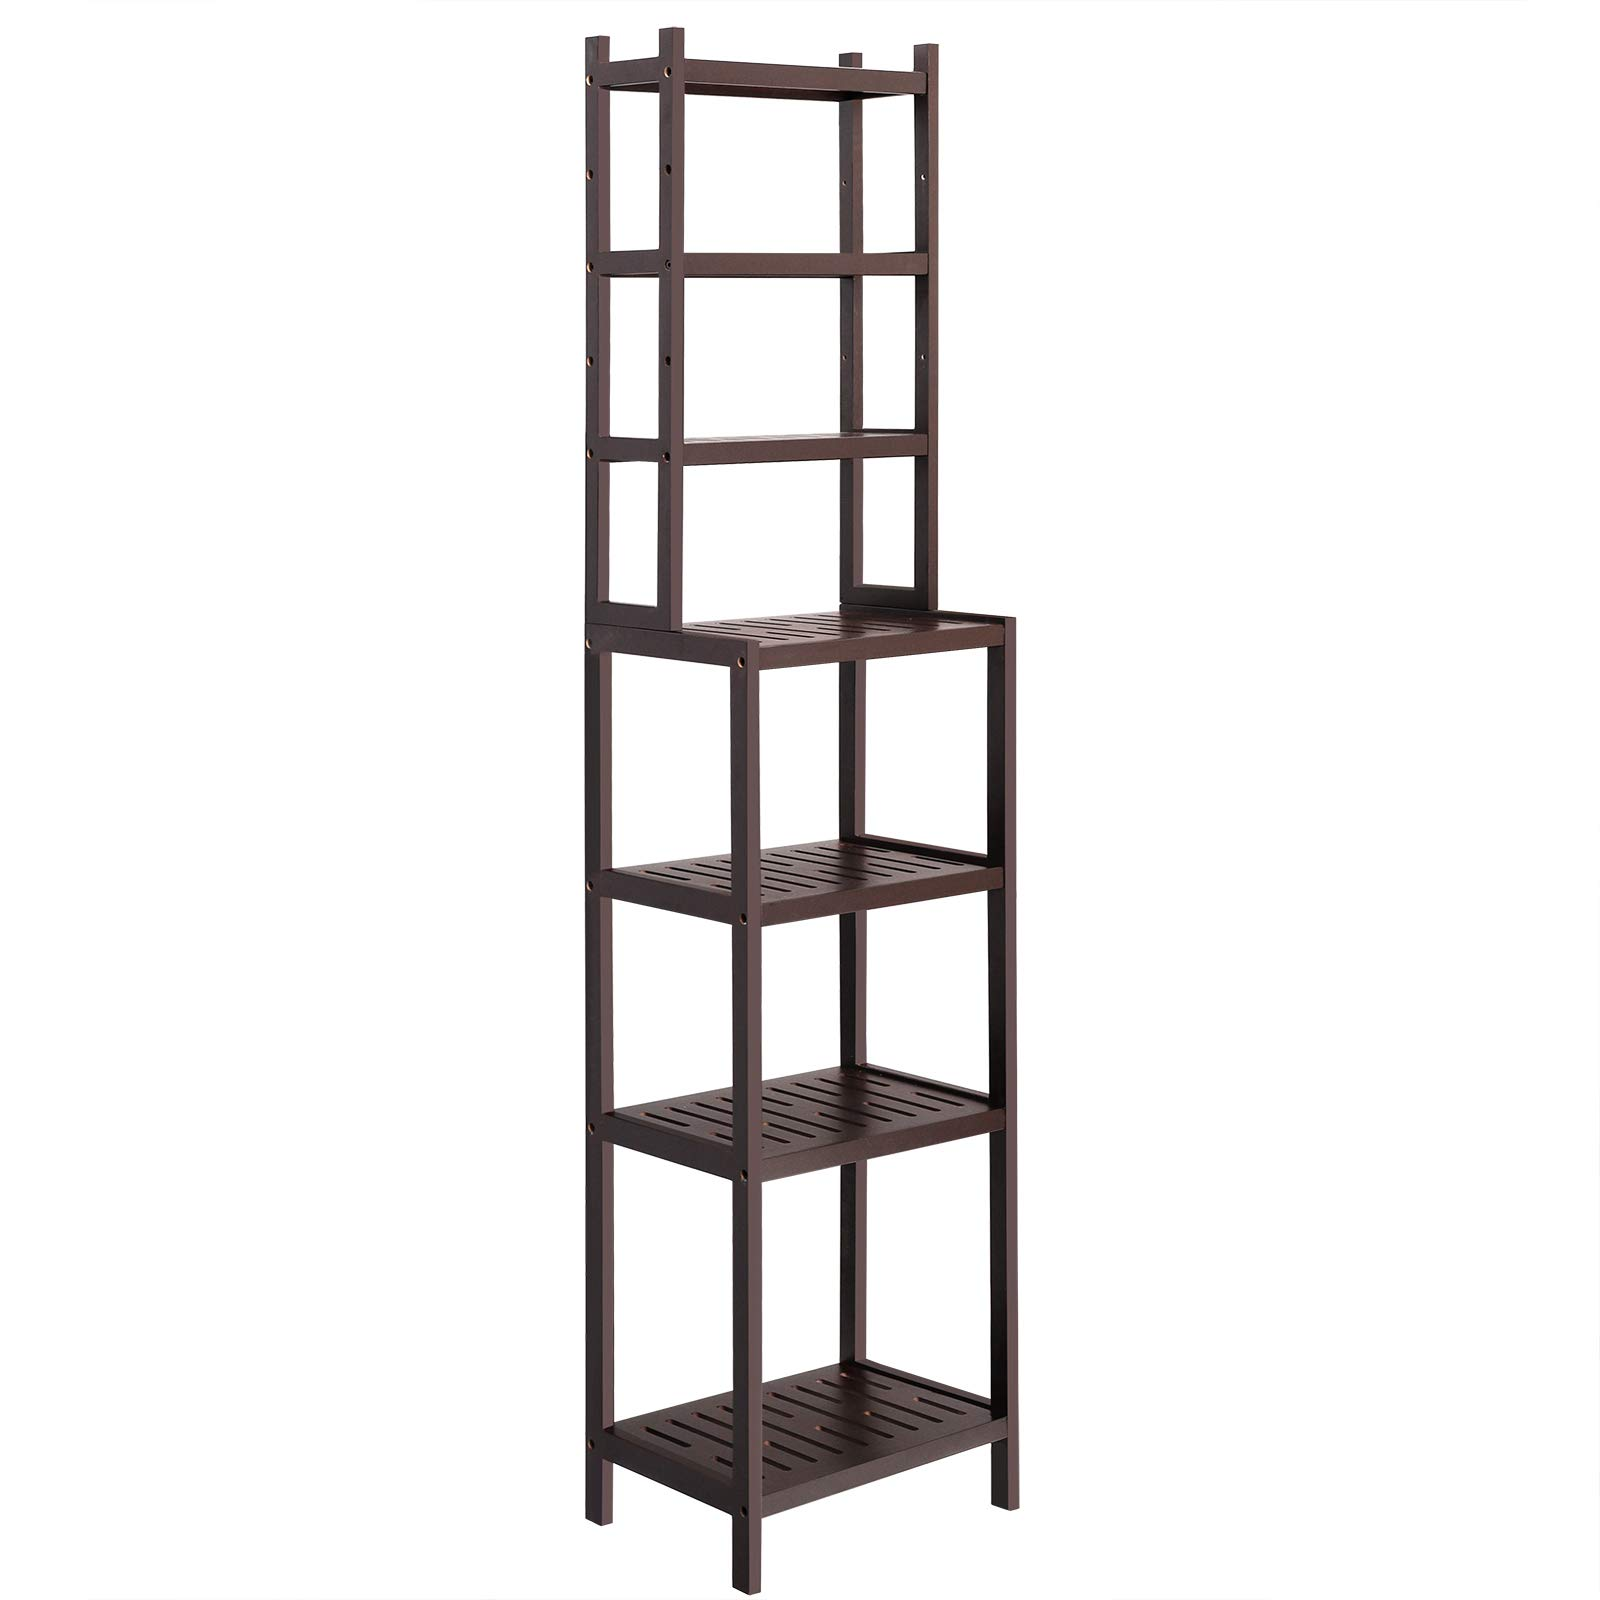 SONGMICS 7-Tier Bamboo Bathroom Shelf, 2-in-1 Design Adjustable Storage Rack, Free Standing Multifunctional Organizer, Shelving Unit for Washroom, Living Room, Kitchen, Brown UBCR01BR